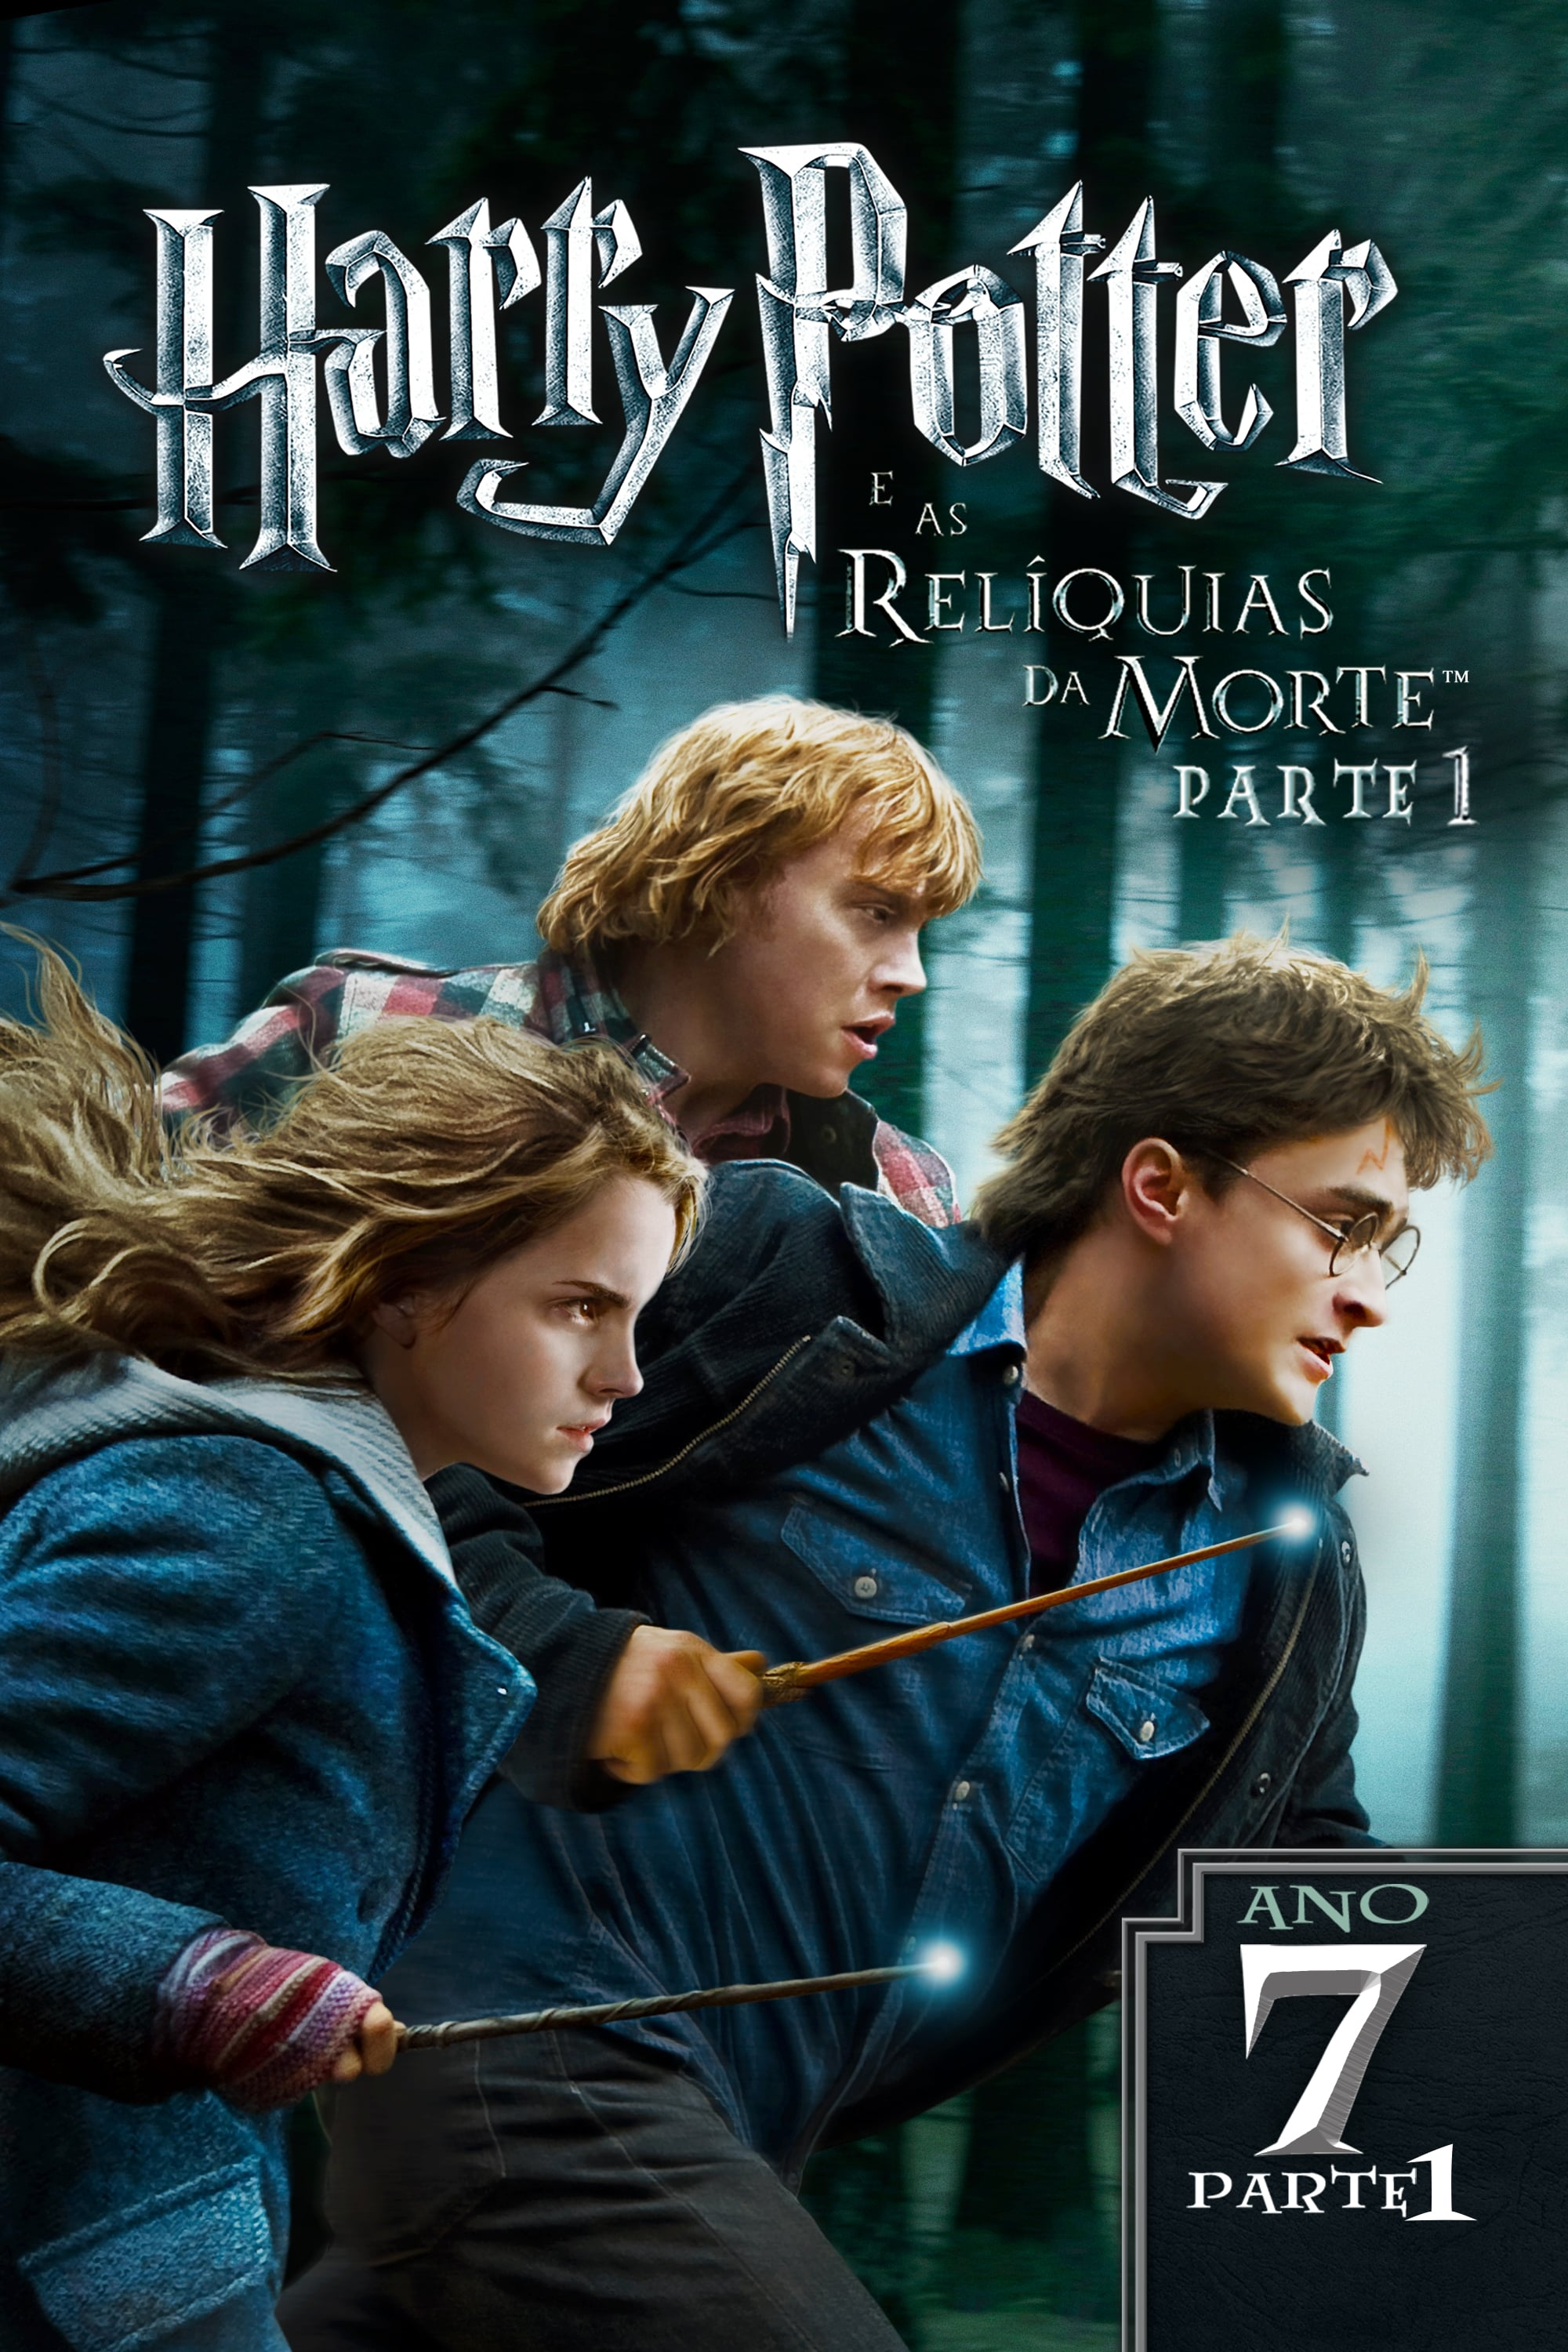 Harry Potter 7 e as Relíquias da Morte - Parte 1 Dublado